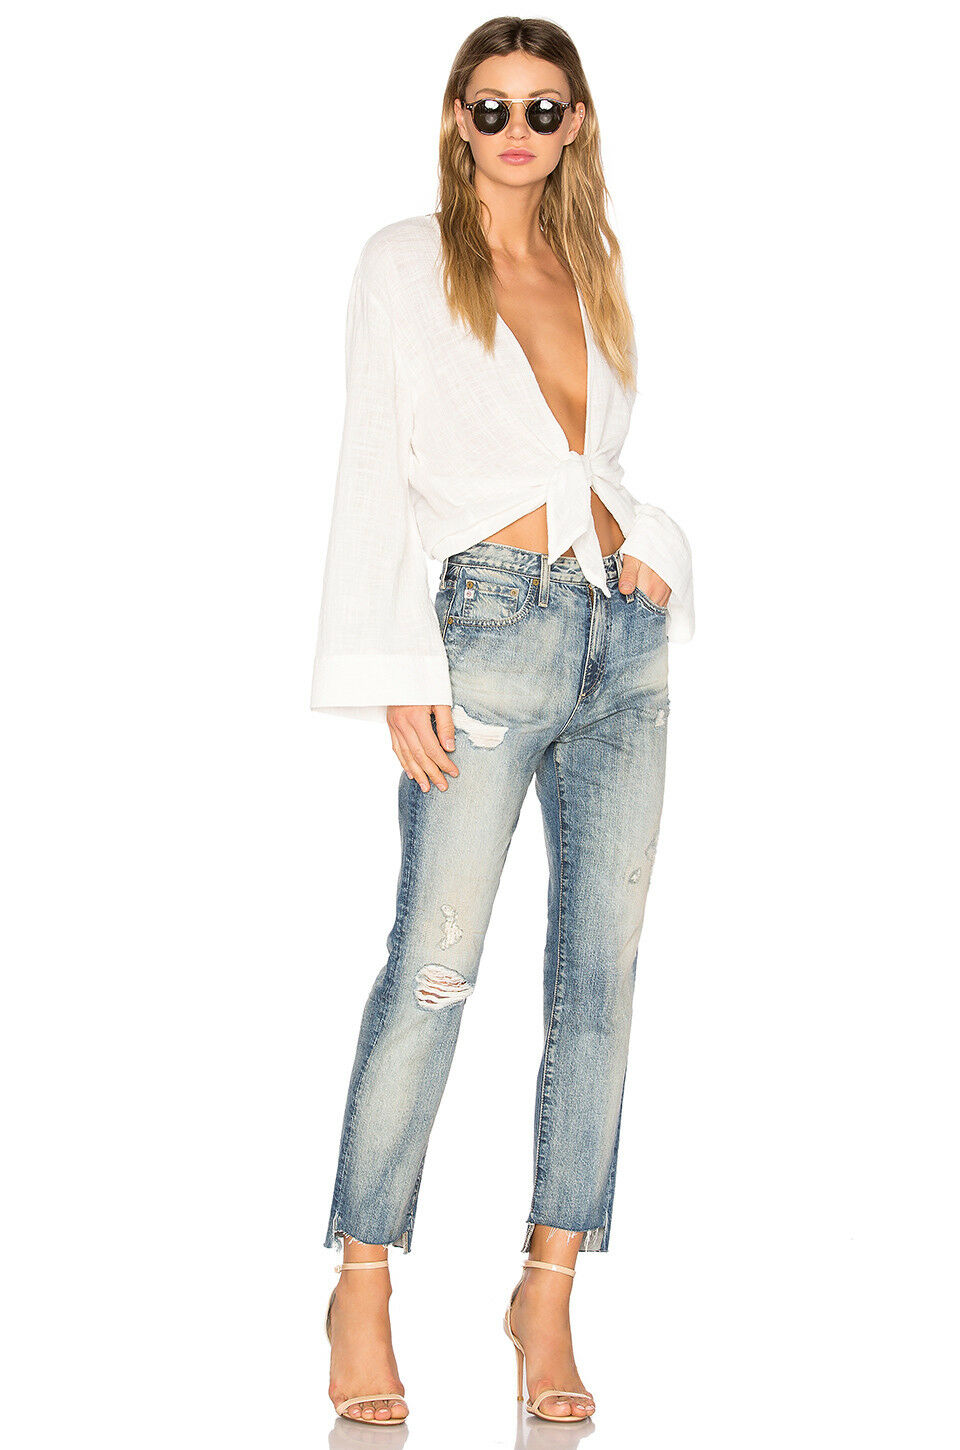 325 AG Adriano goldschmied Phoebe Distressed 17 Years Lapse Method Women Jeans